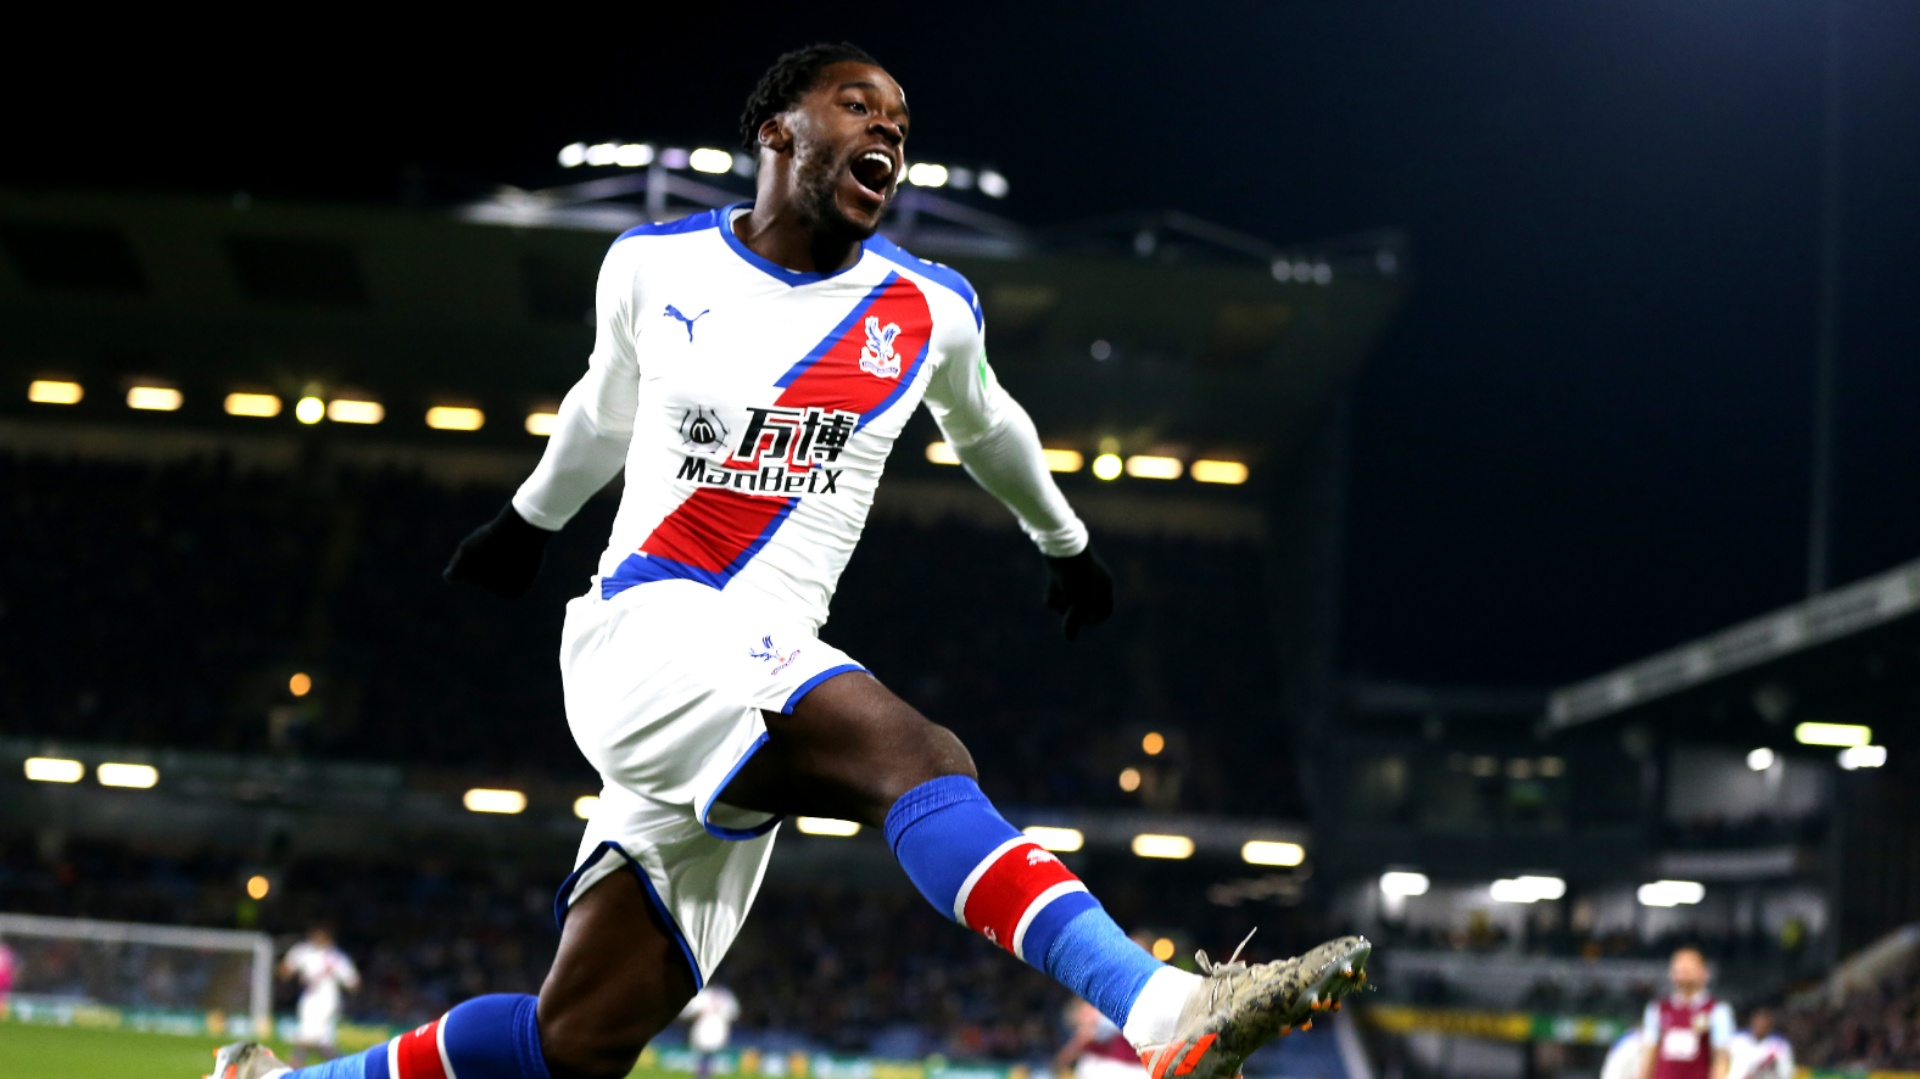 10-man Palace clinch win over Bournemouth